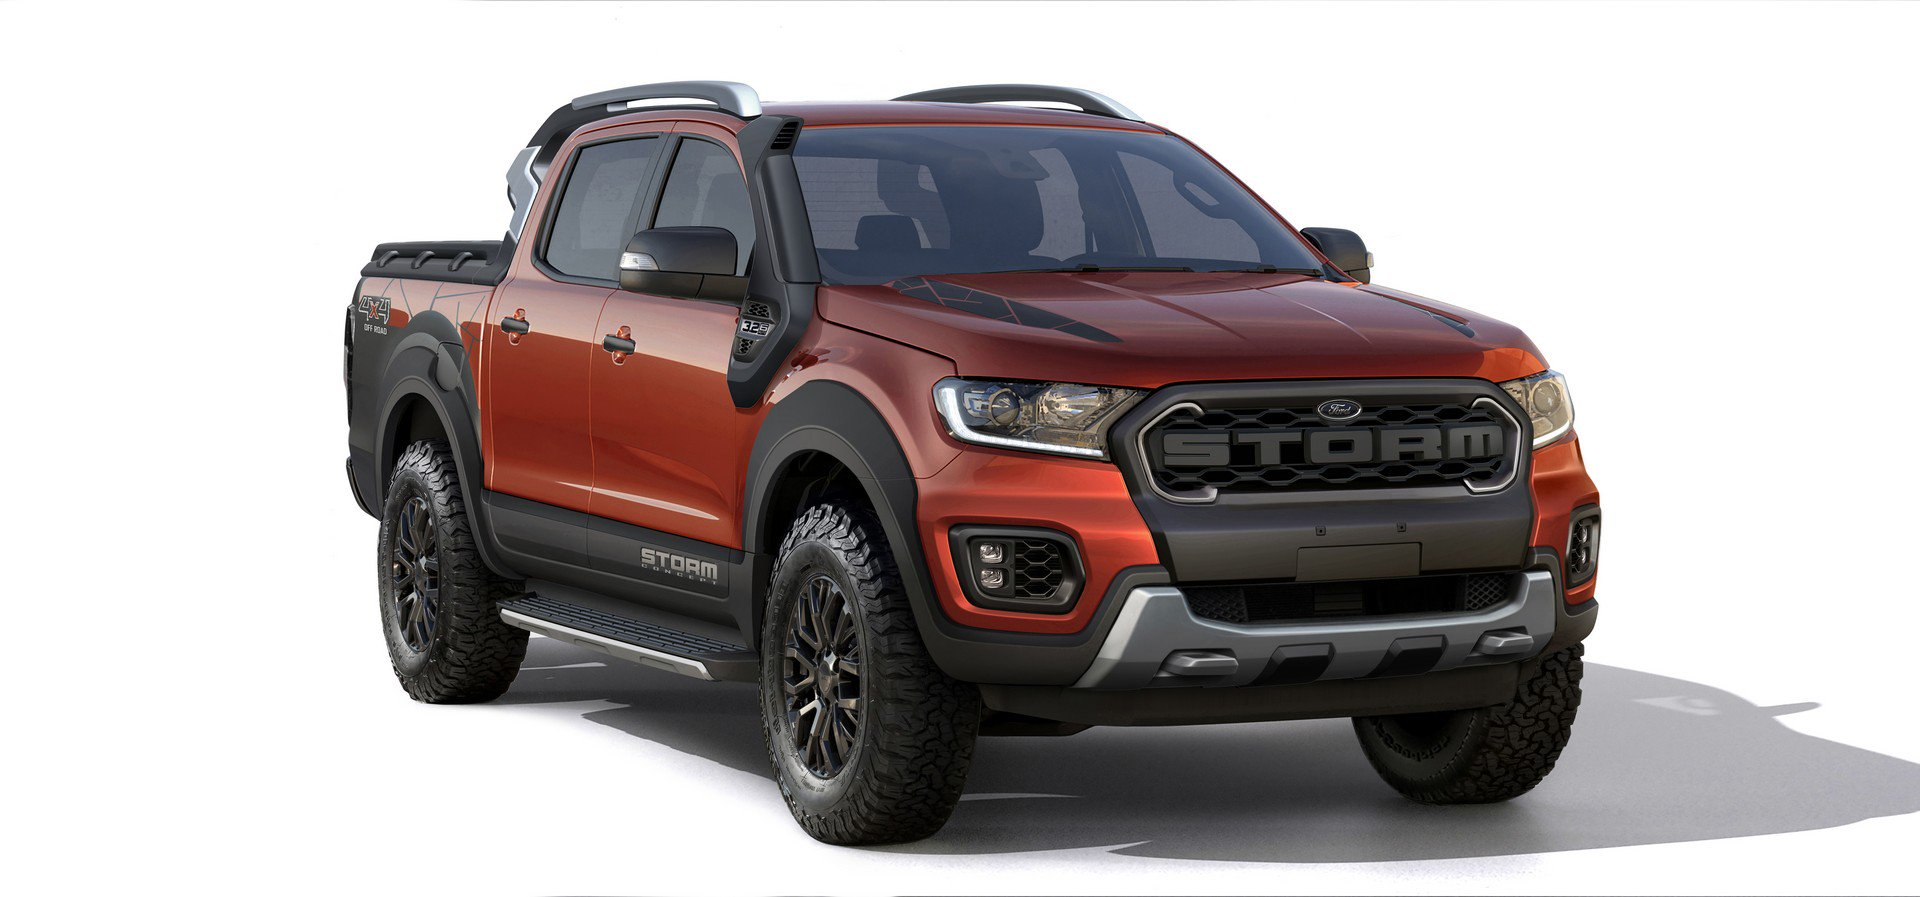 Ford Ranger Storm Concept and Ka Urban Warrior Concept (2)